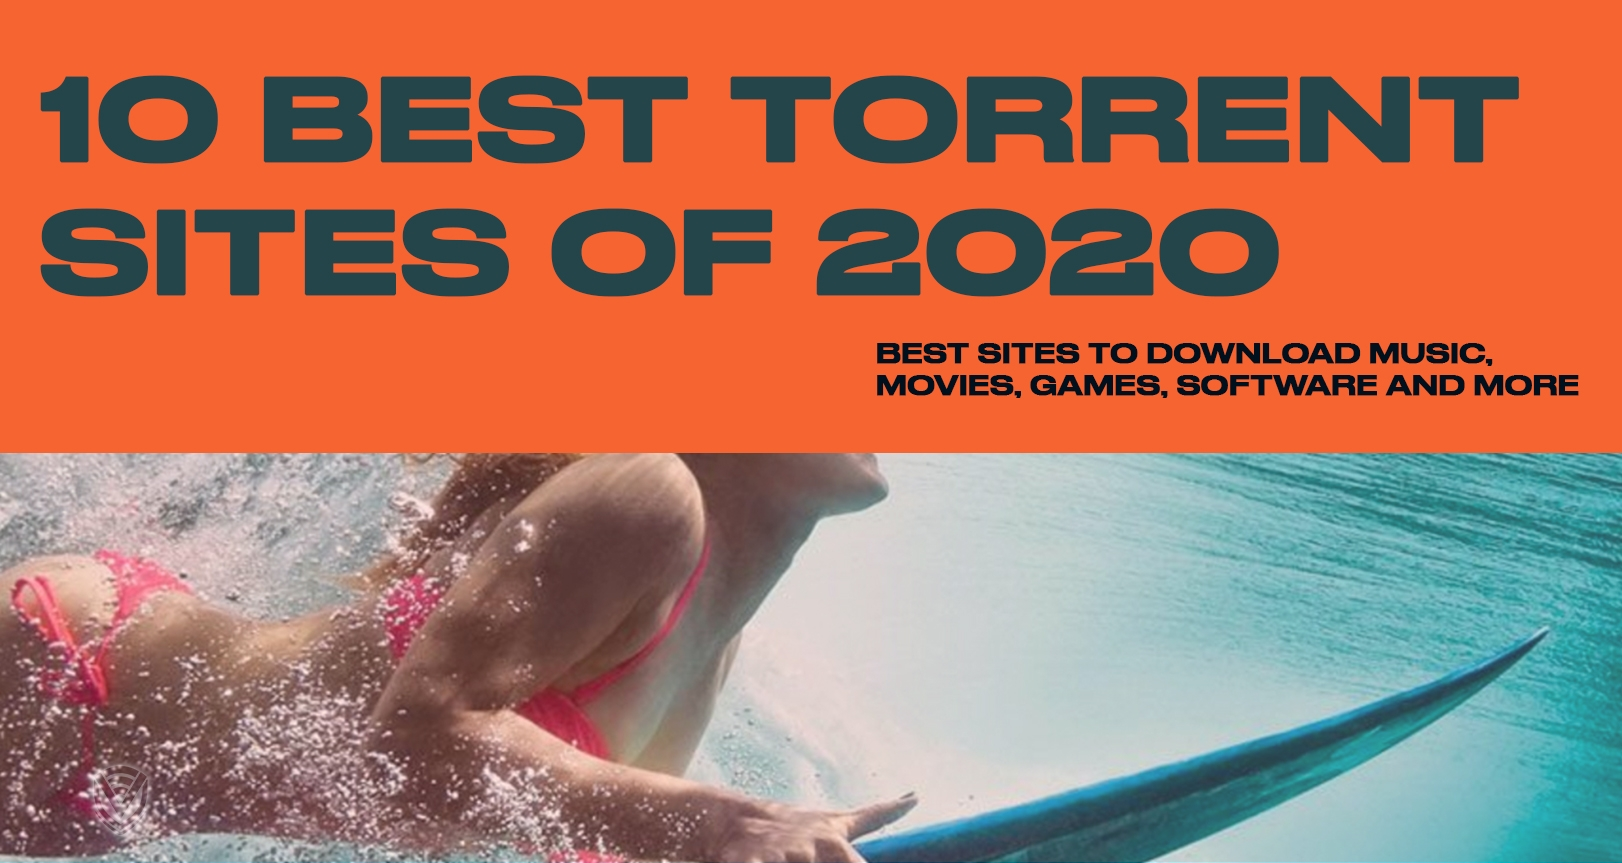 10 Best Torrenting Sites As Of 2020